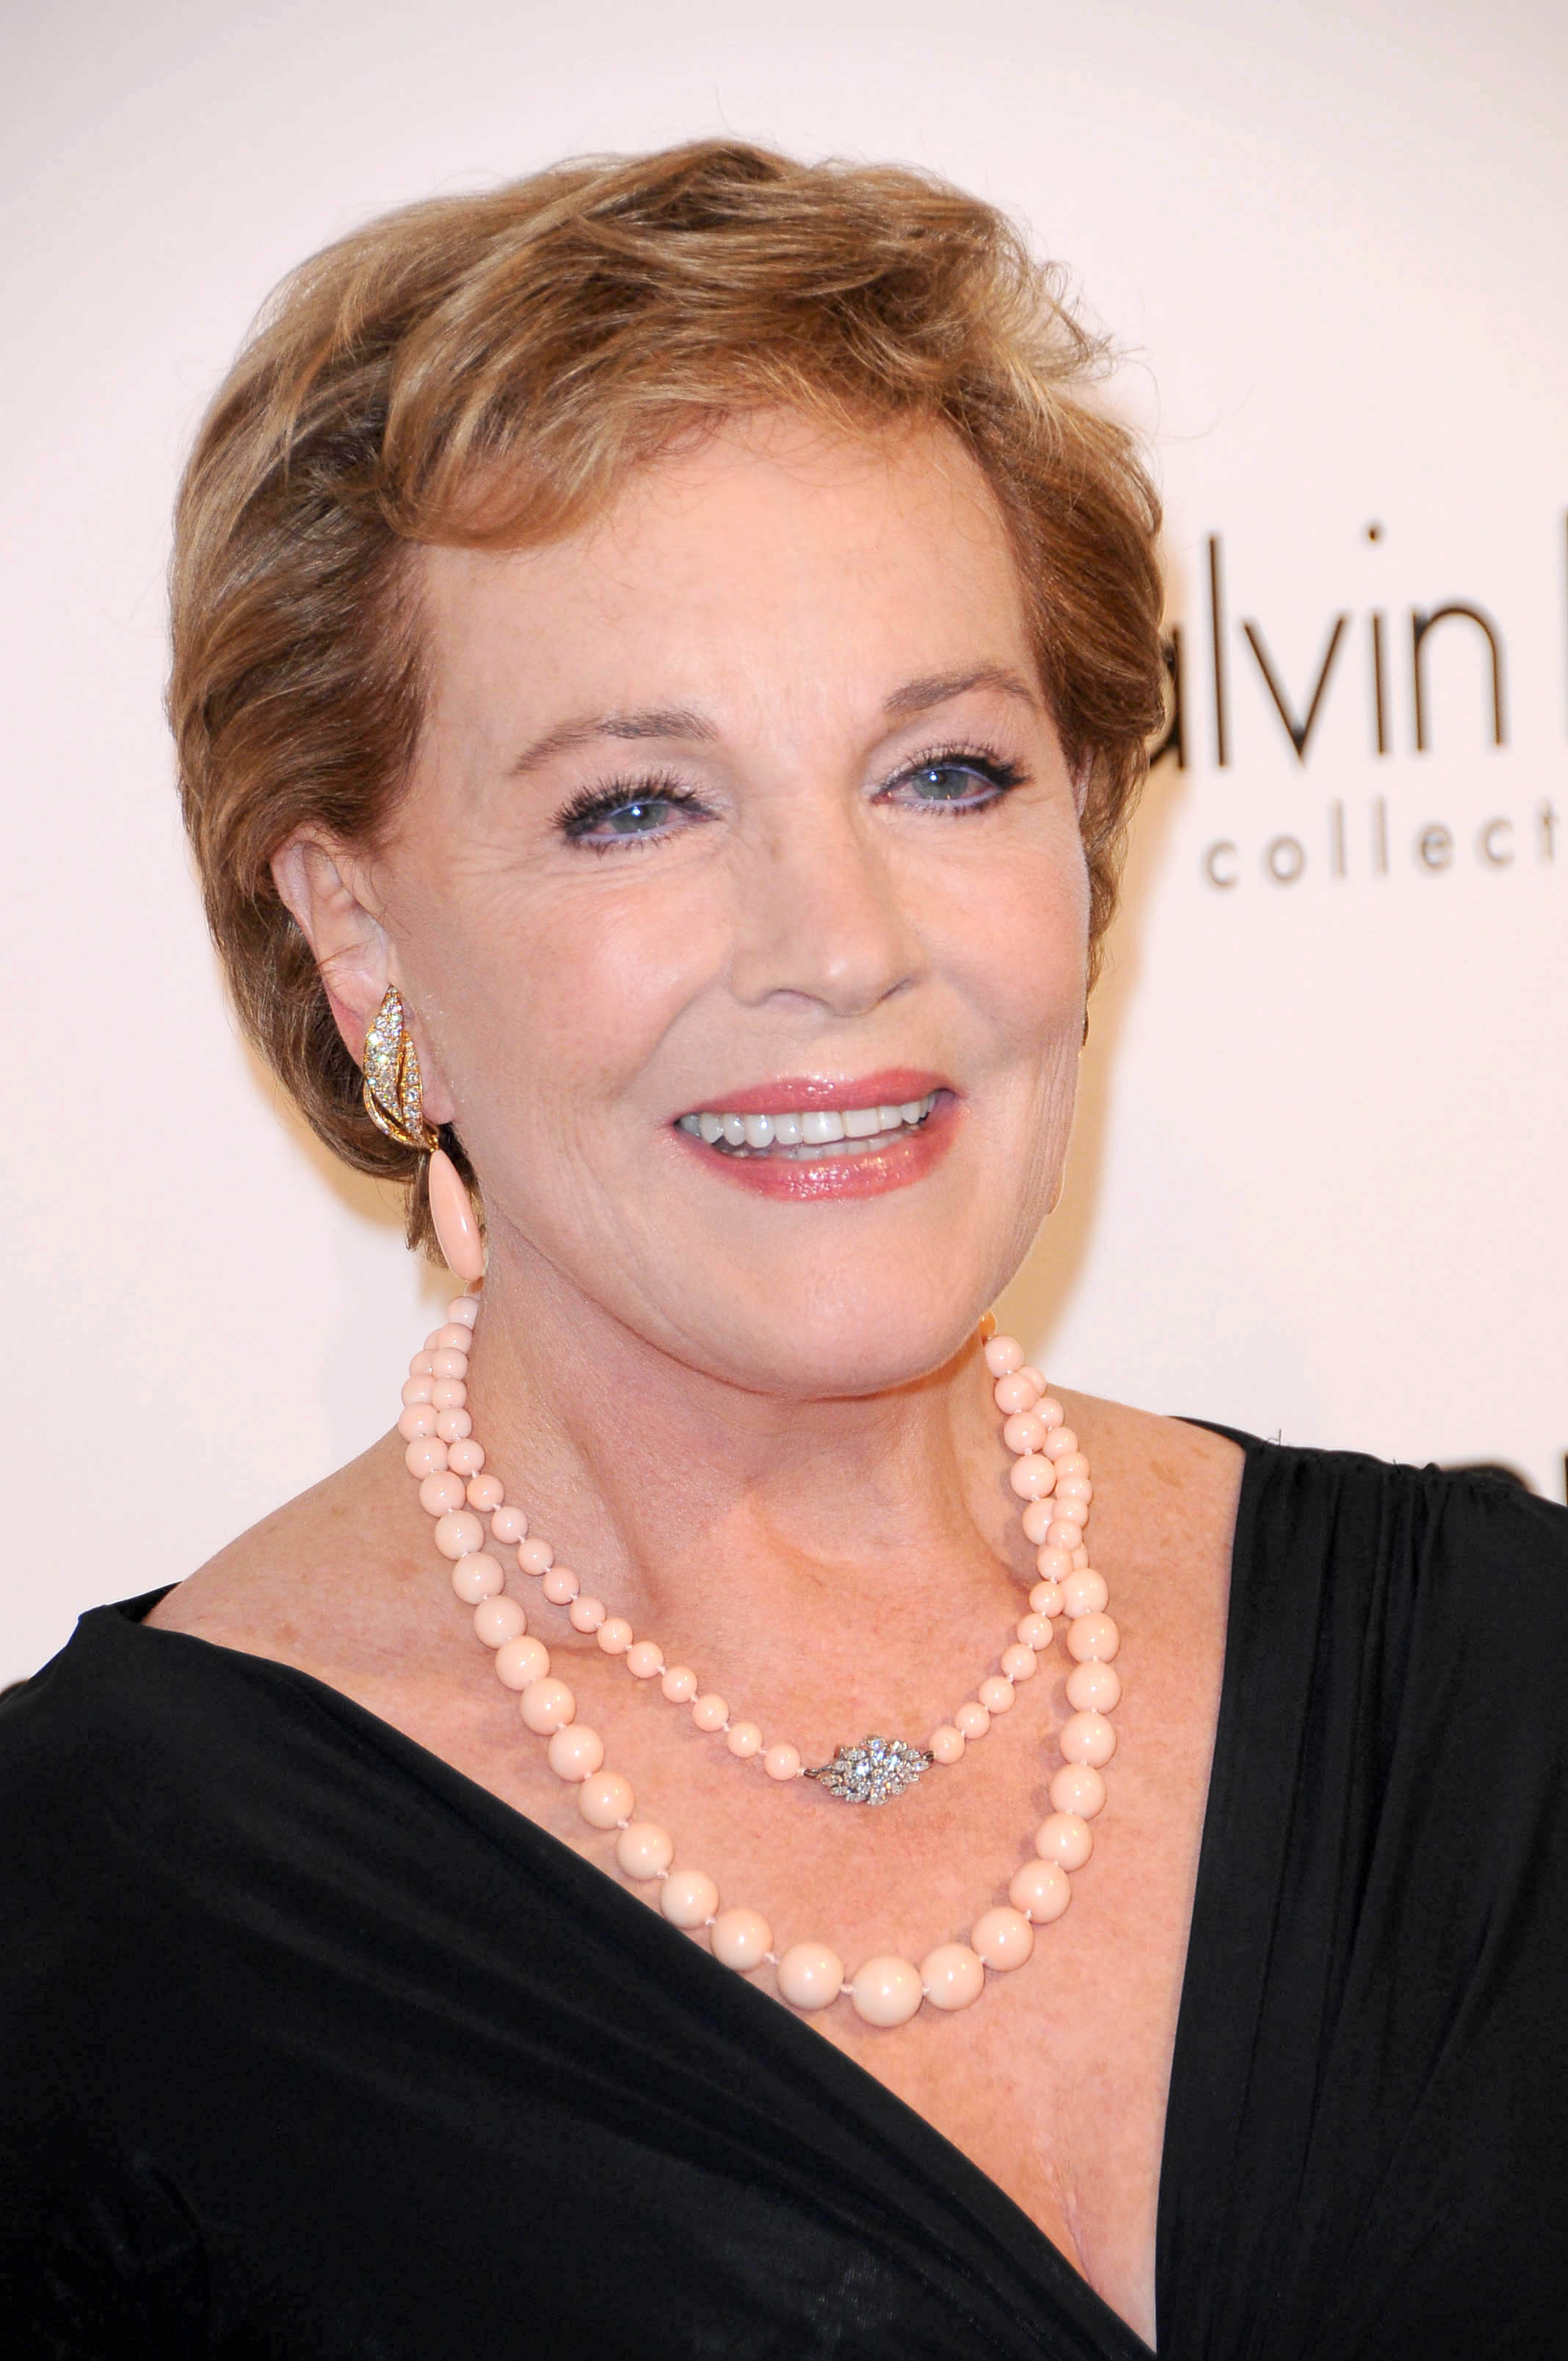 The 82-year old daughter of father Edward Charles Wells and mother Barbara Ward Wells, 174 cm tall Julie Andrews in 2017 photo